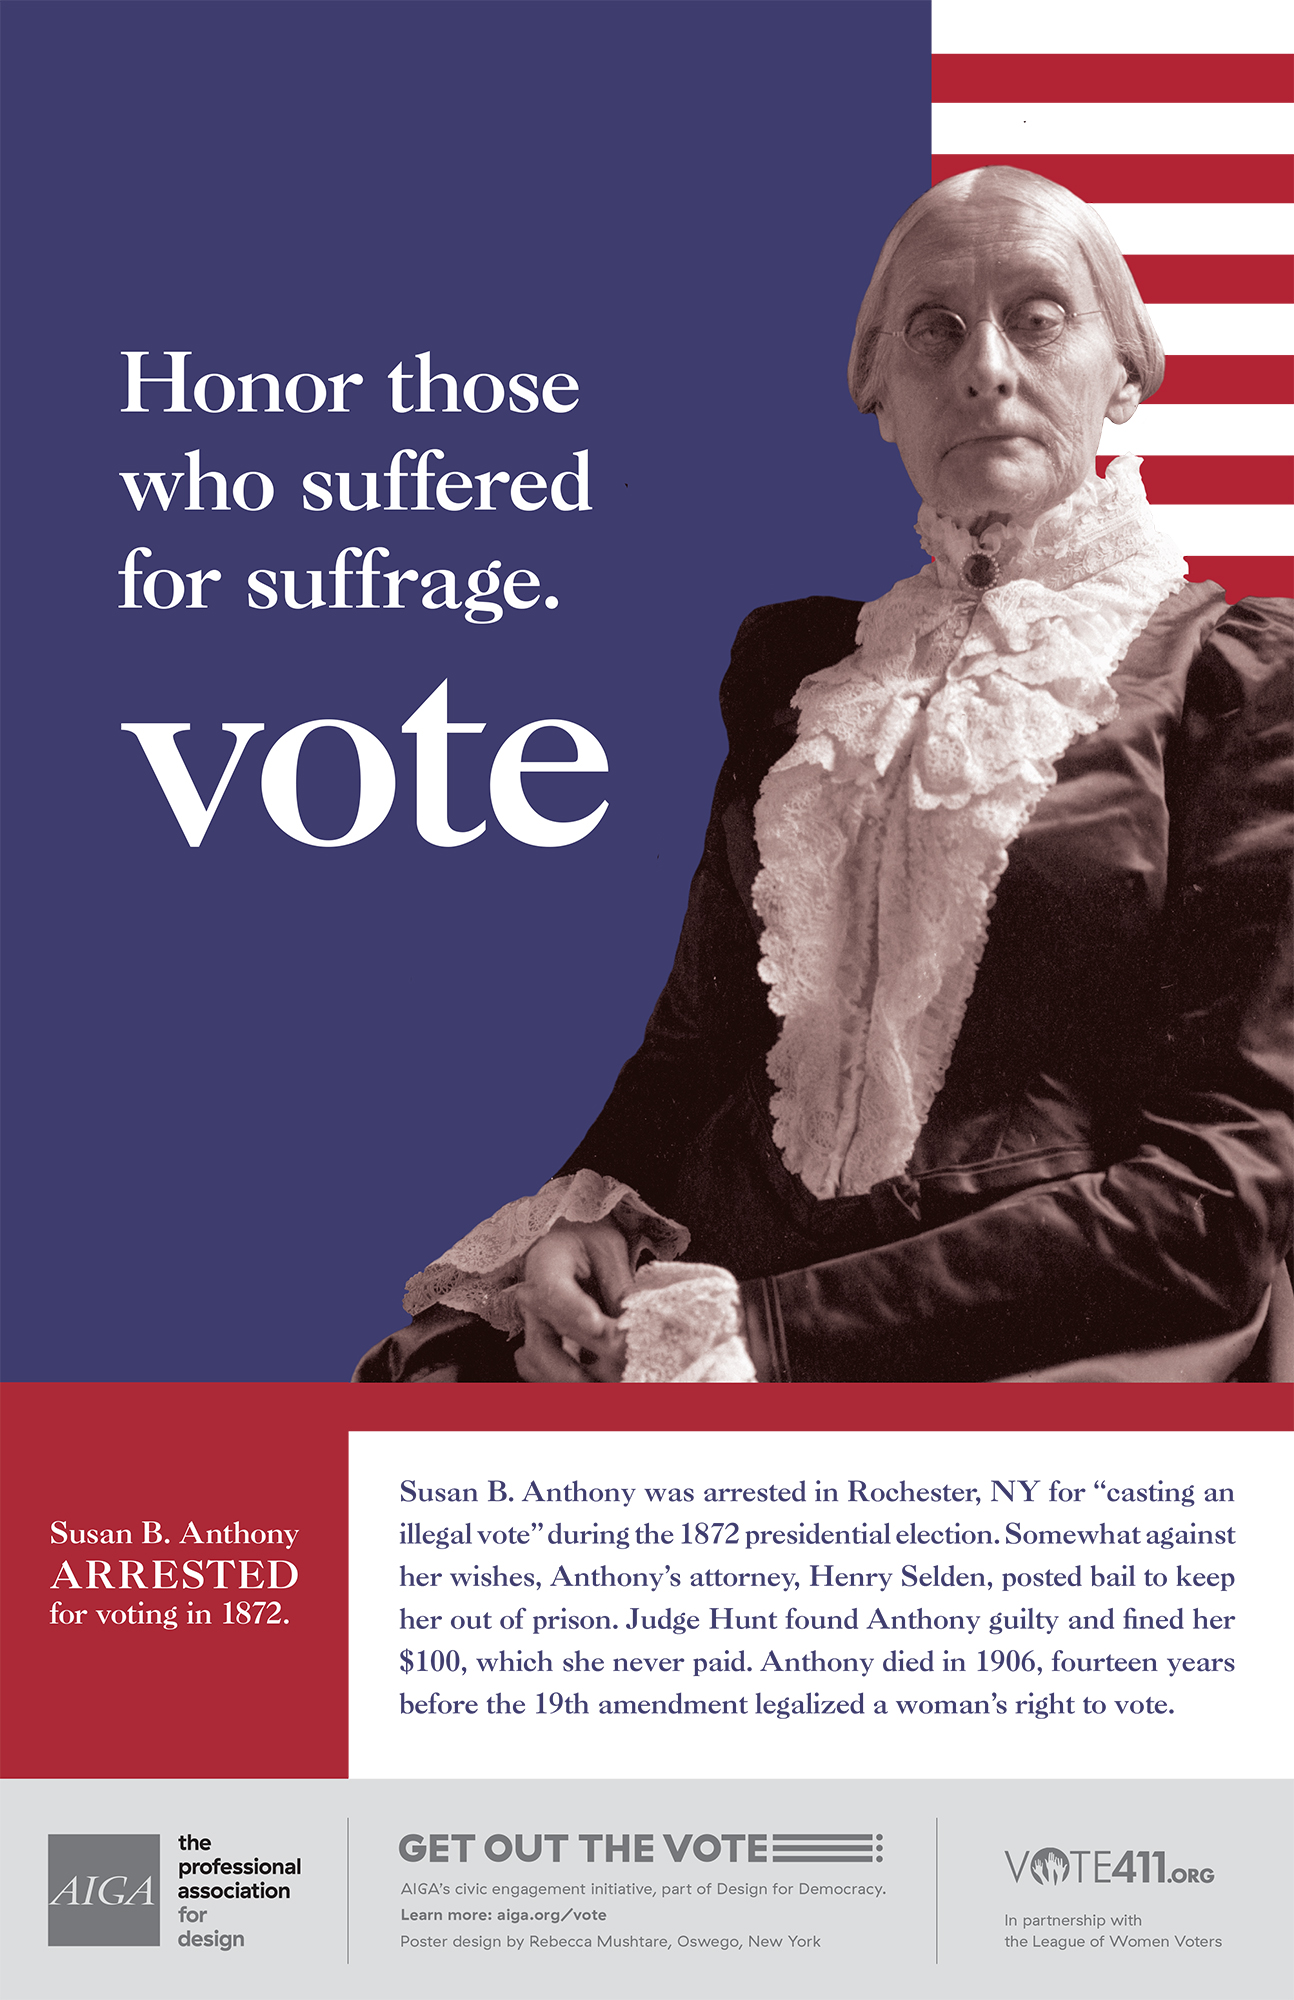 Honor those who suffered for suffrage. Vote.